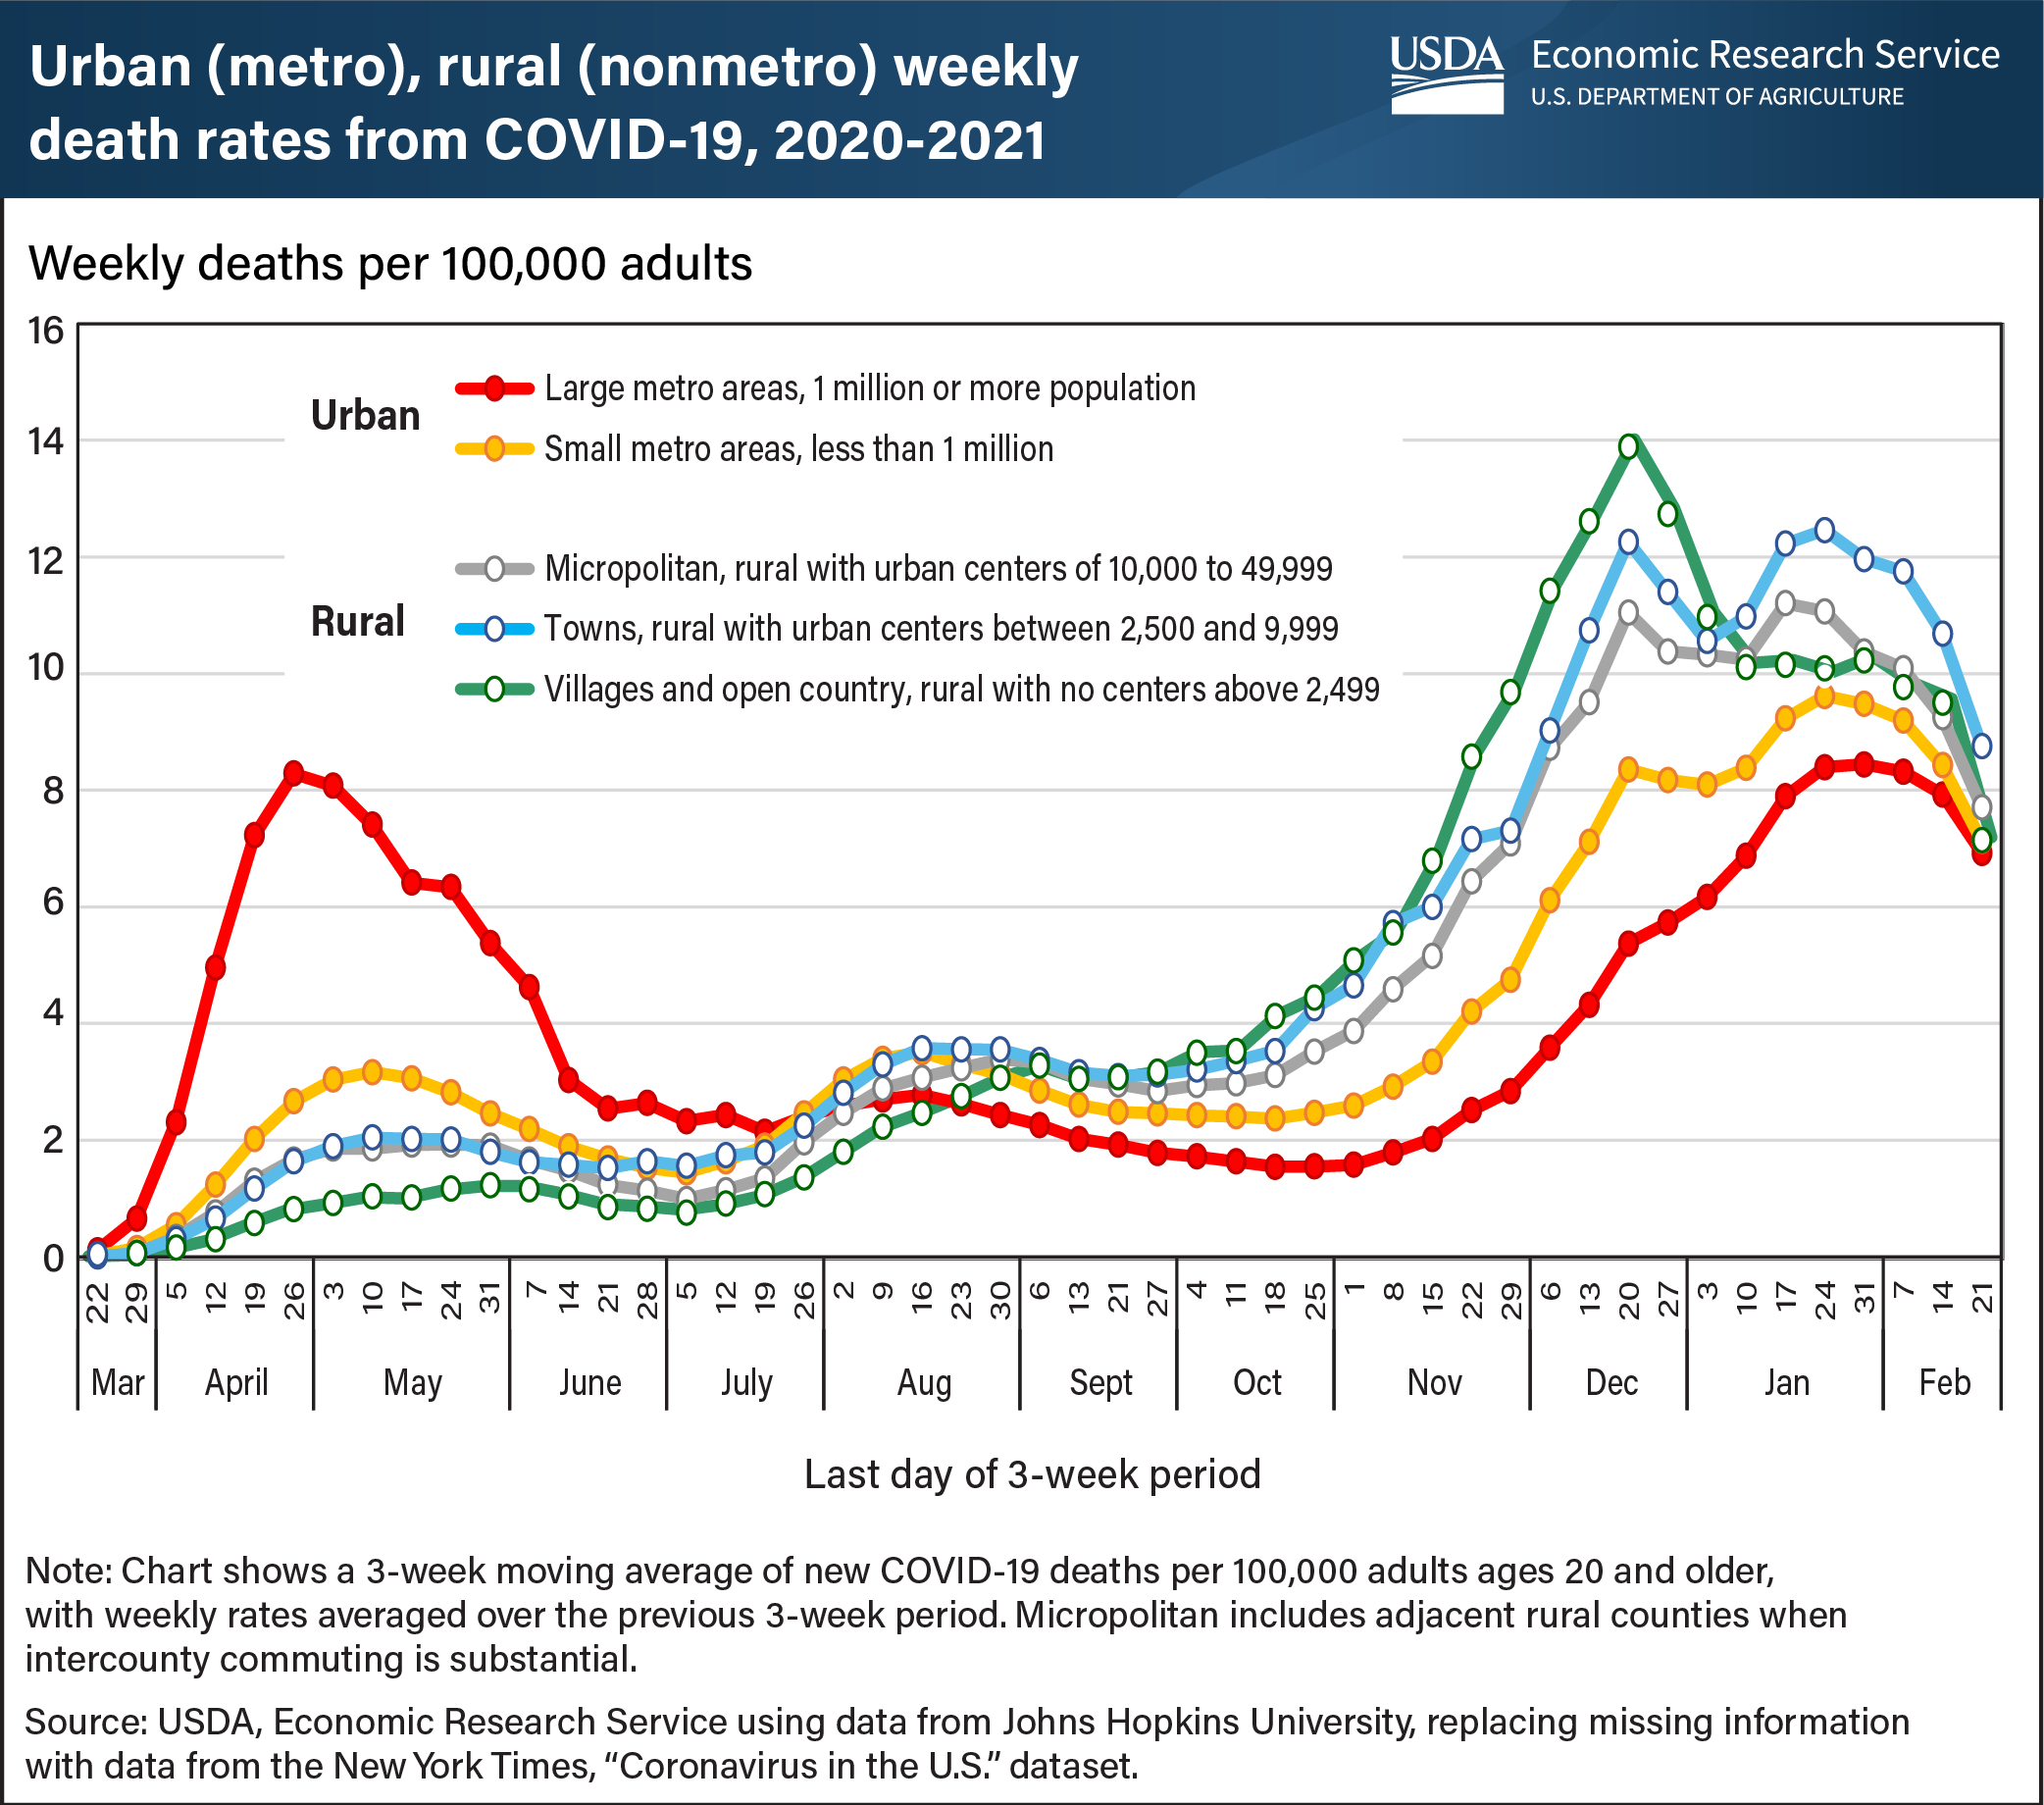 chart, urban and rural weekly death rates from covid-19, 2021-2021